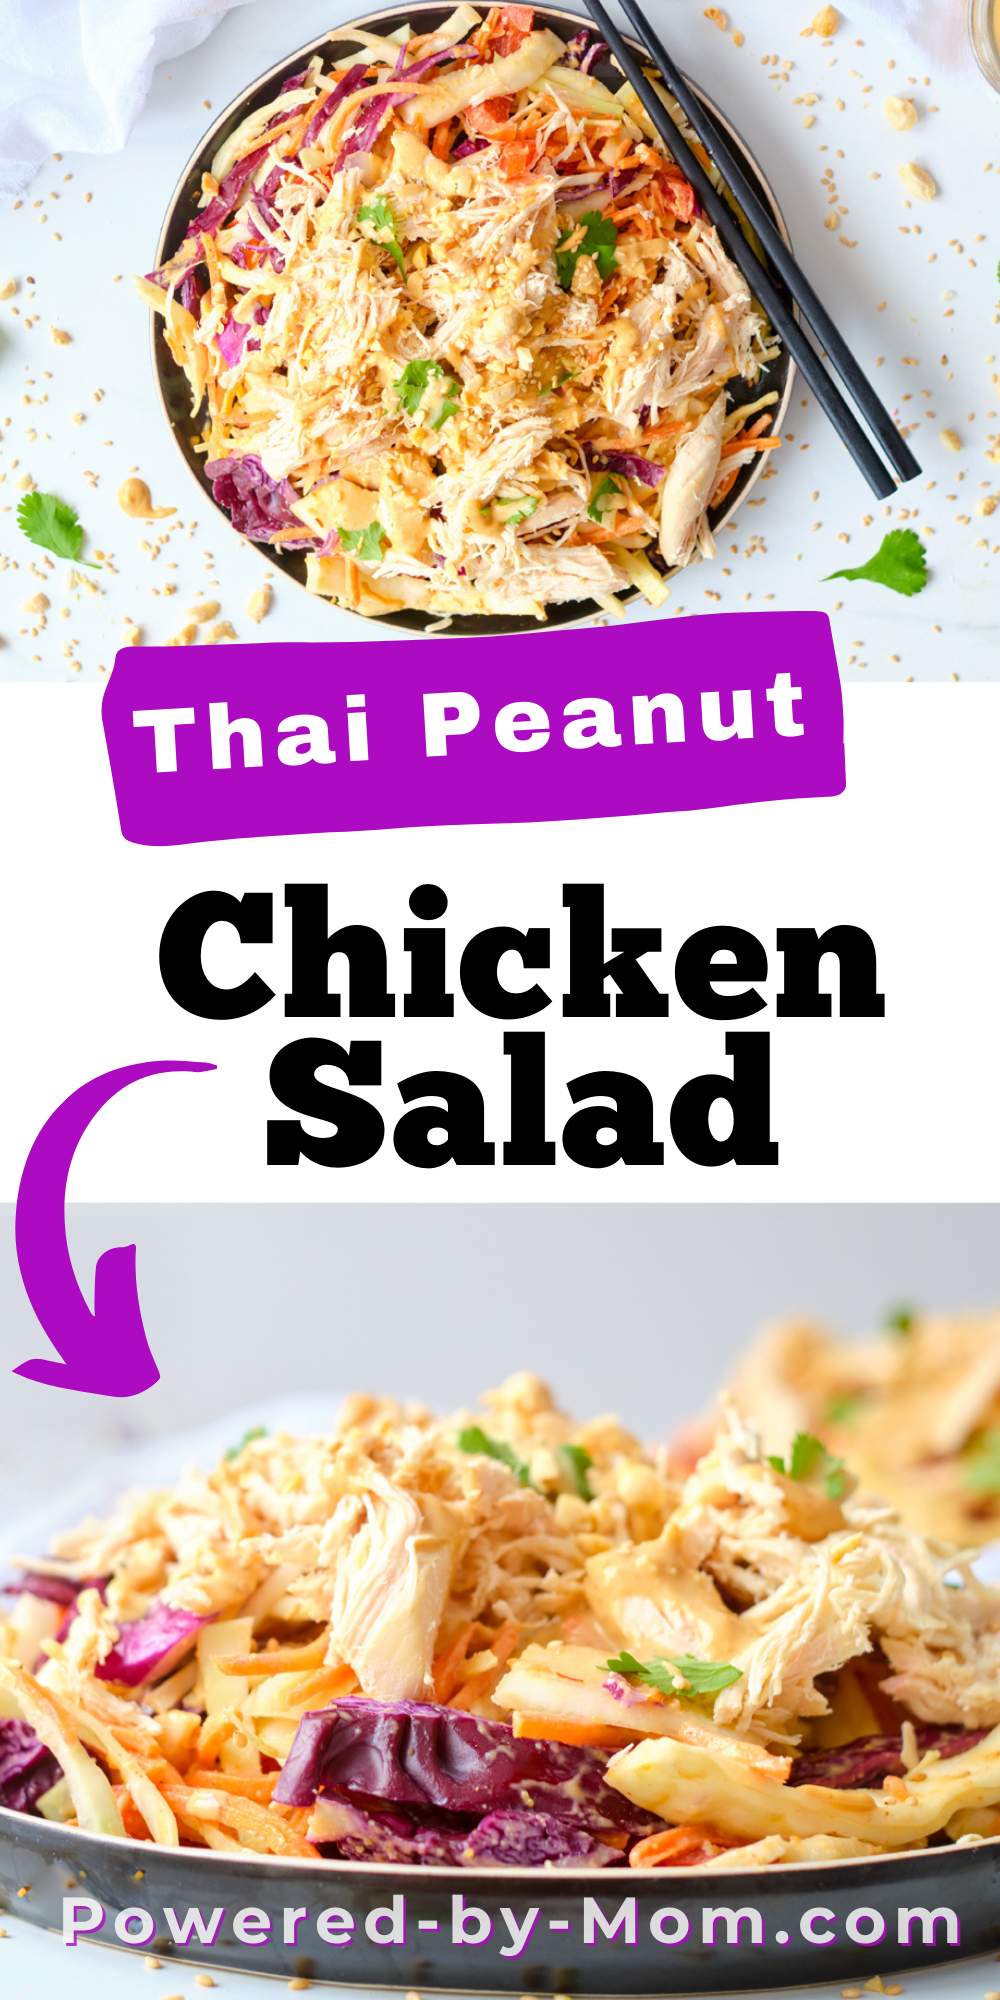 This delicious Thai Peanut Chicken Salad has everything you need in a meal from the crisp cabbage, veggies, chicken and topped with a yummy peanut sauce.